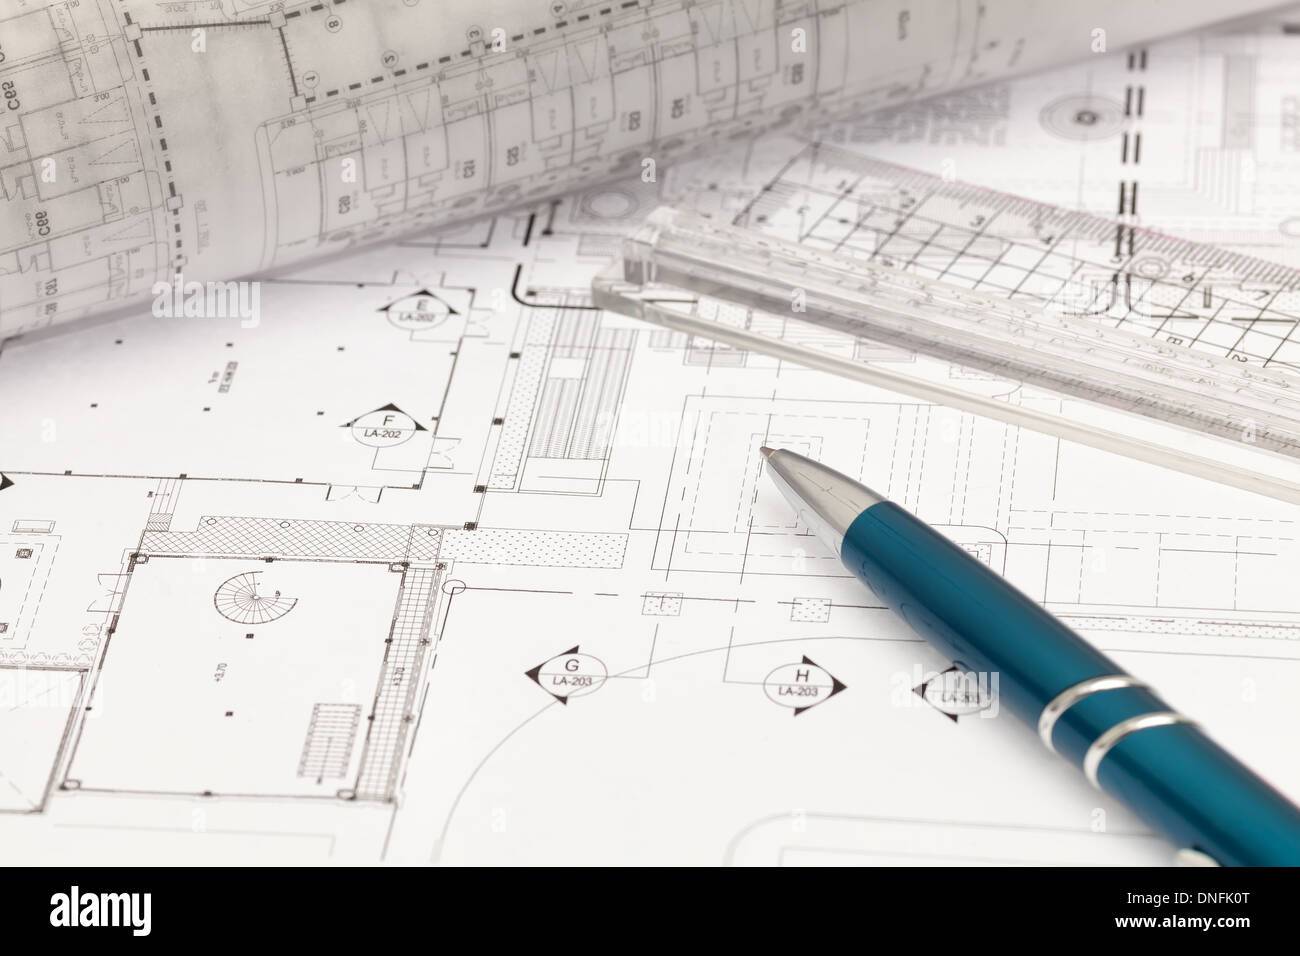 Architectural Drawing Stock Photos & Architectural Drawing